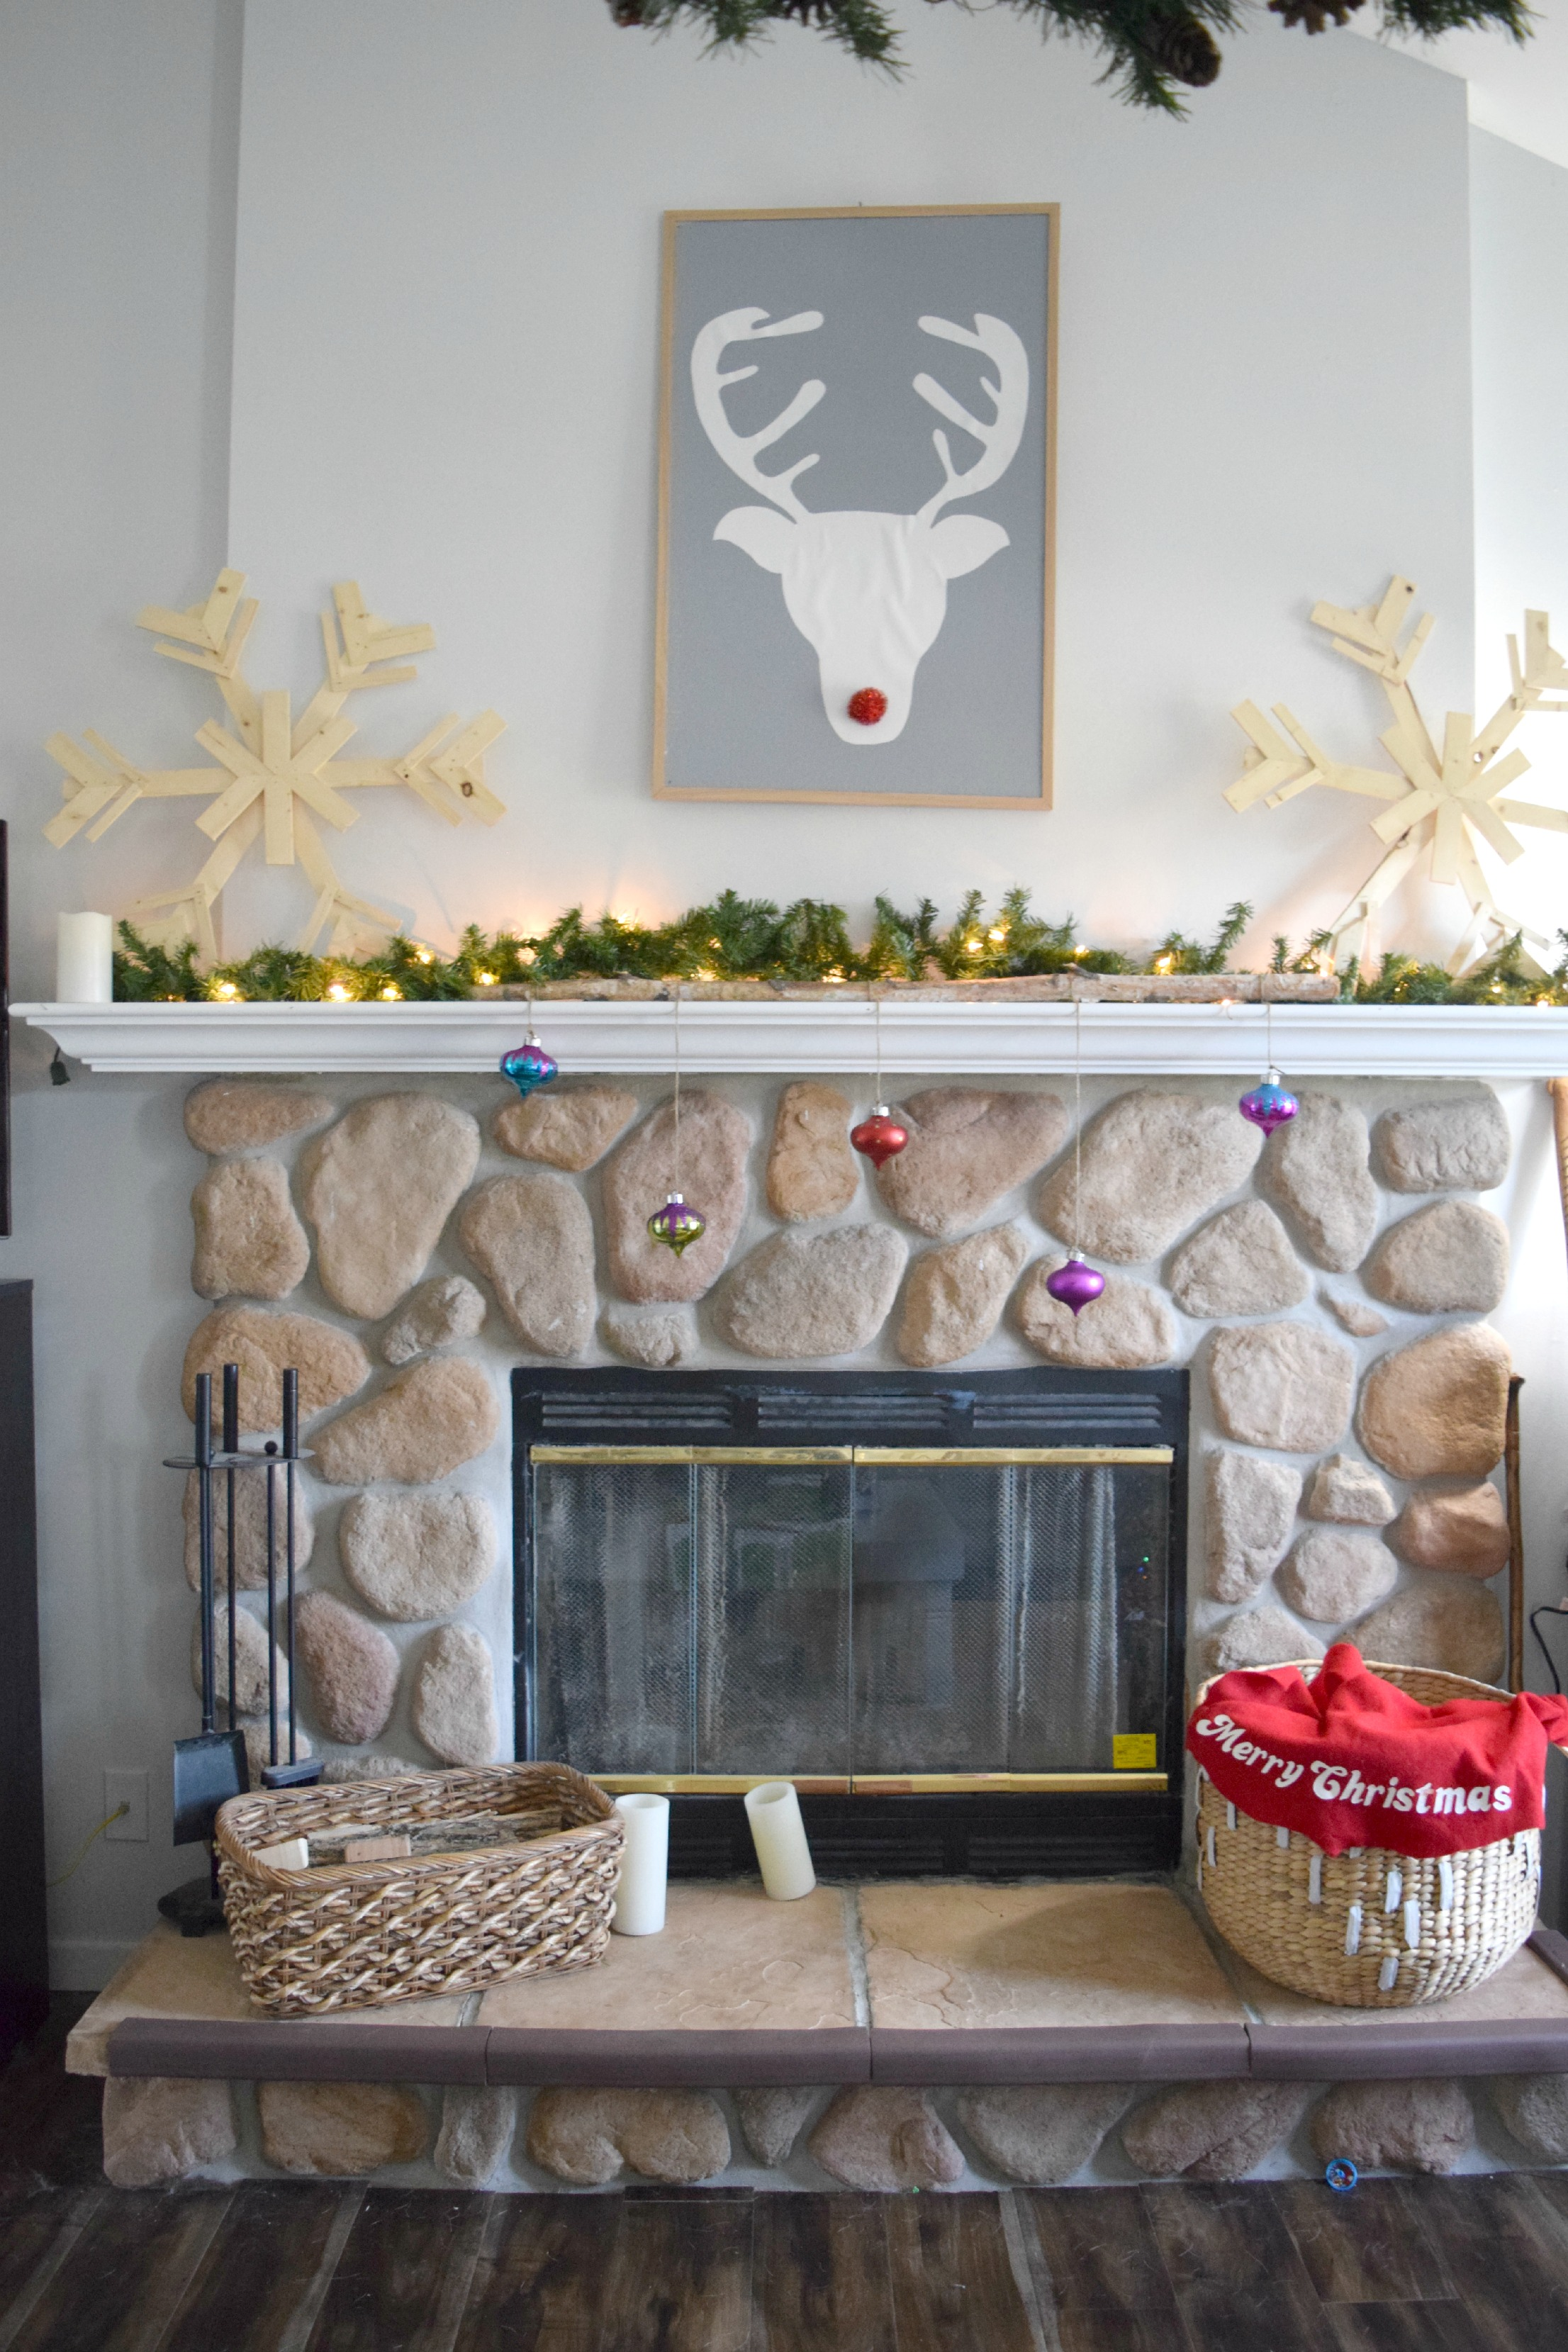 diy ideas to decorate a christmas fireplace mantel our house now a home. Black Bedroom Furniture Sets. Home Design Ideas